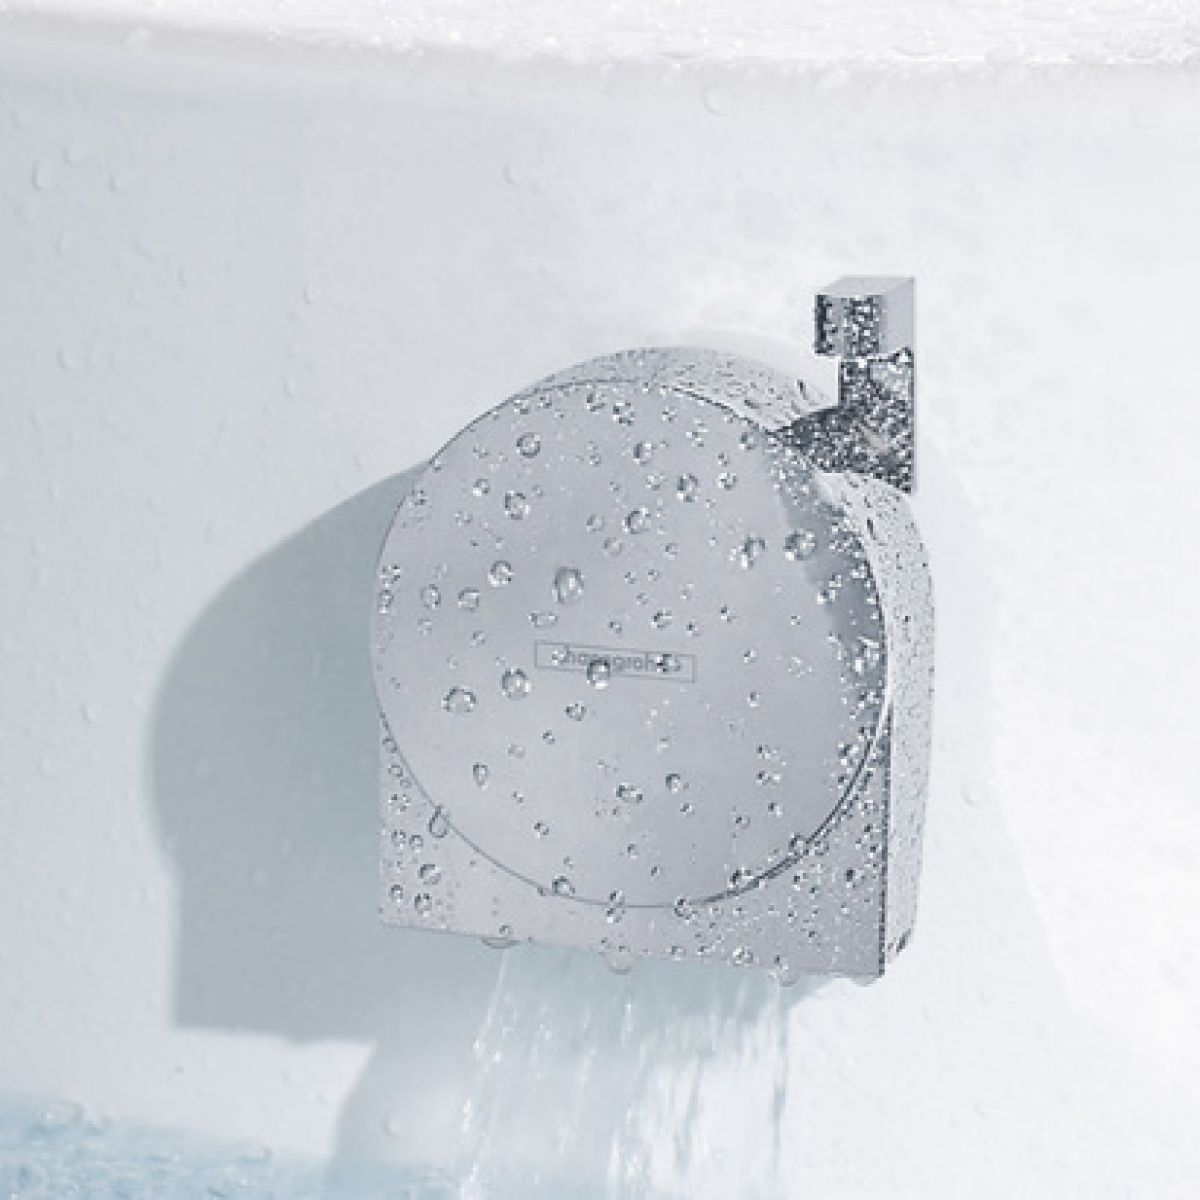 Hansgrohe Exafill S Bath Filler and Overflow with Waste : UK Bathrooms